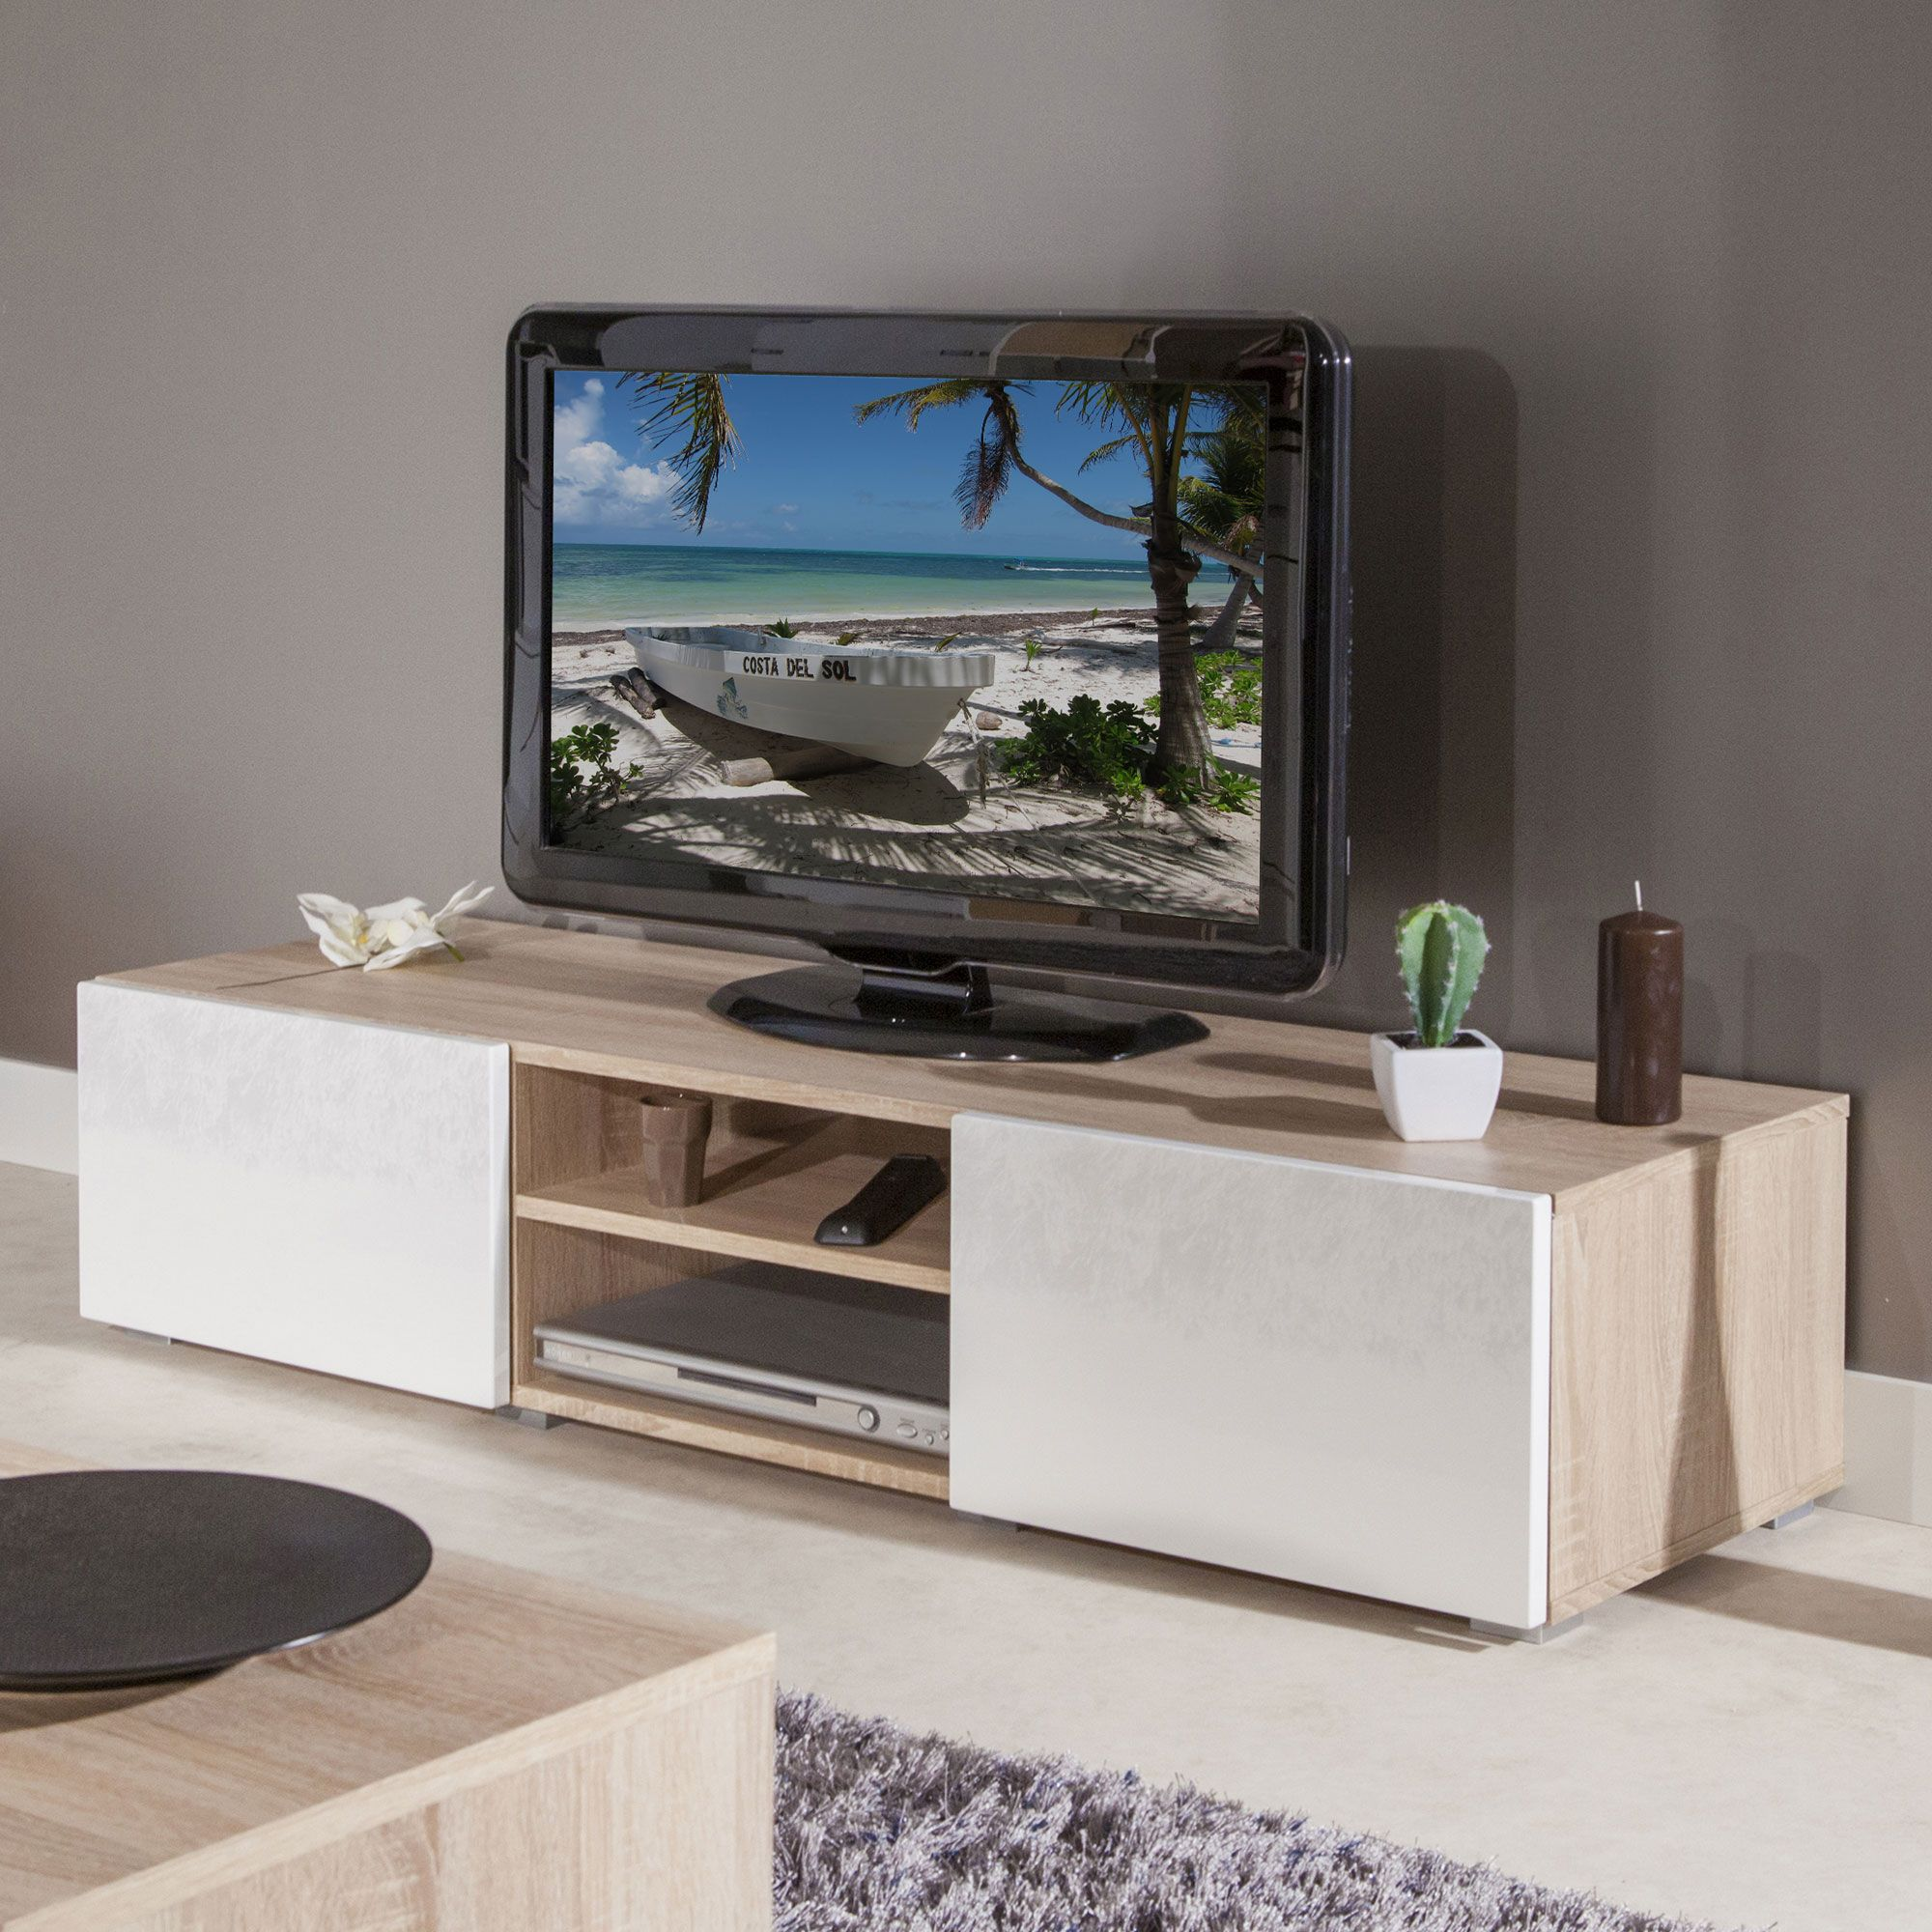 Meubles Tv In 2019 Interiors Living Room Entertainment Center Room